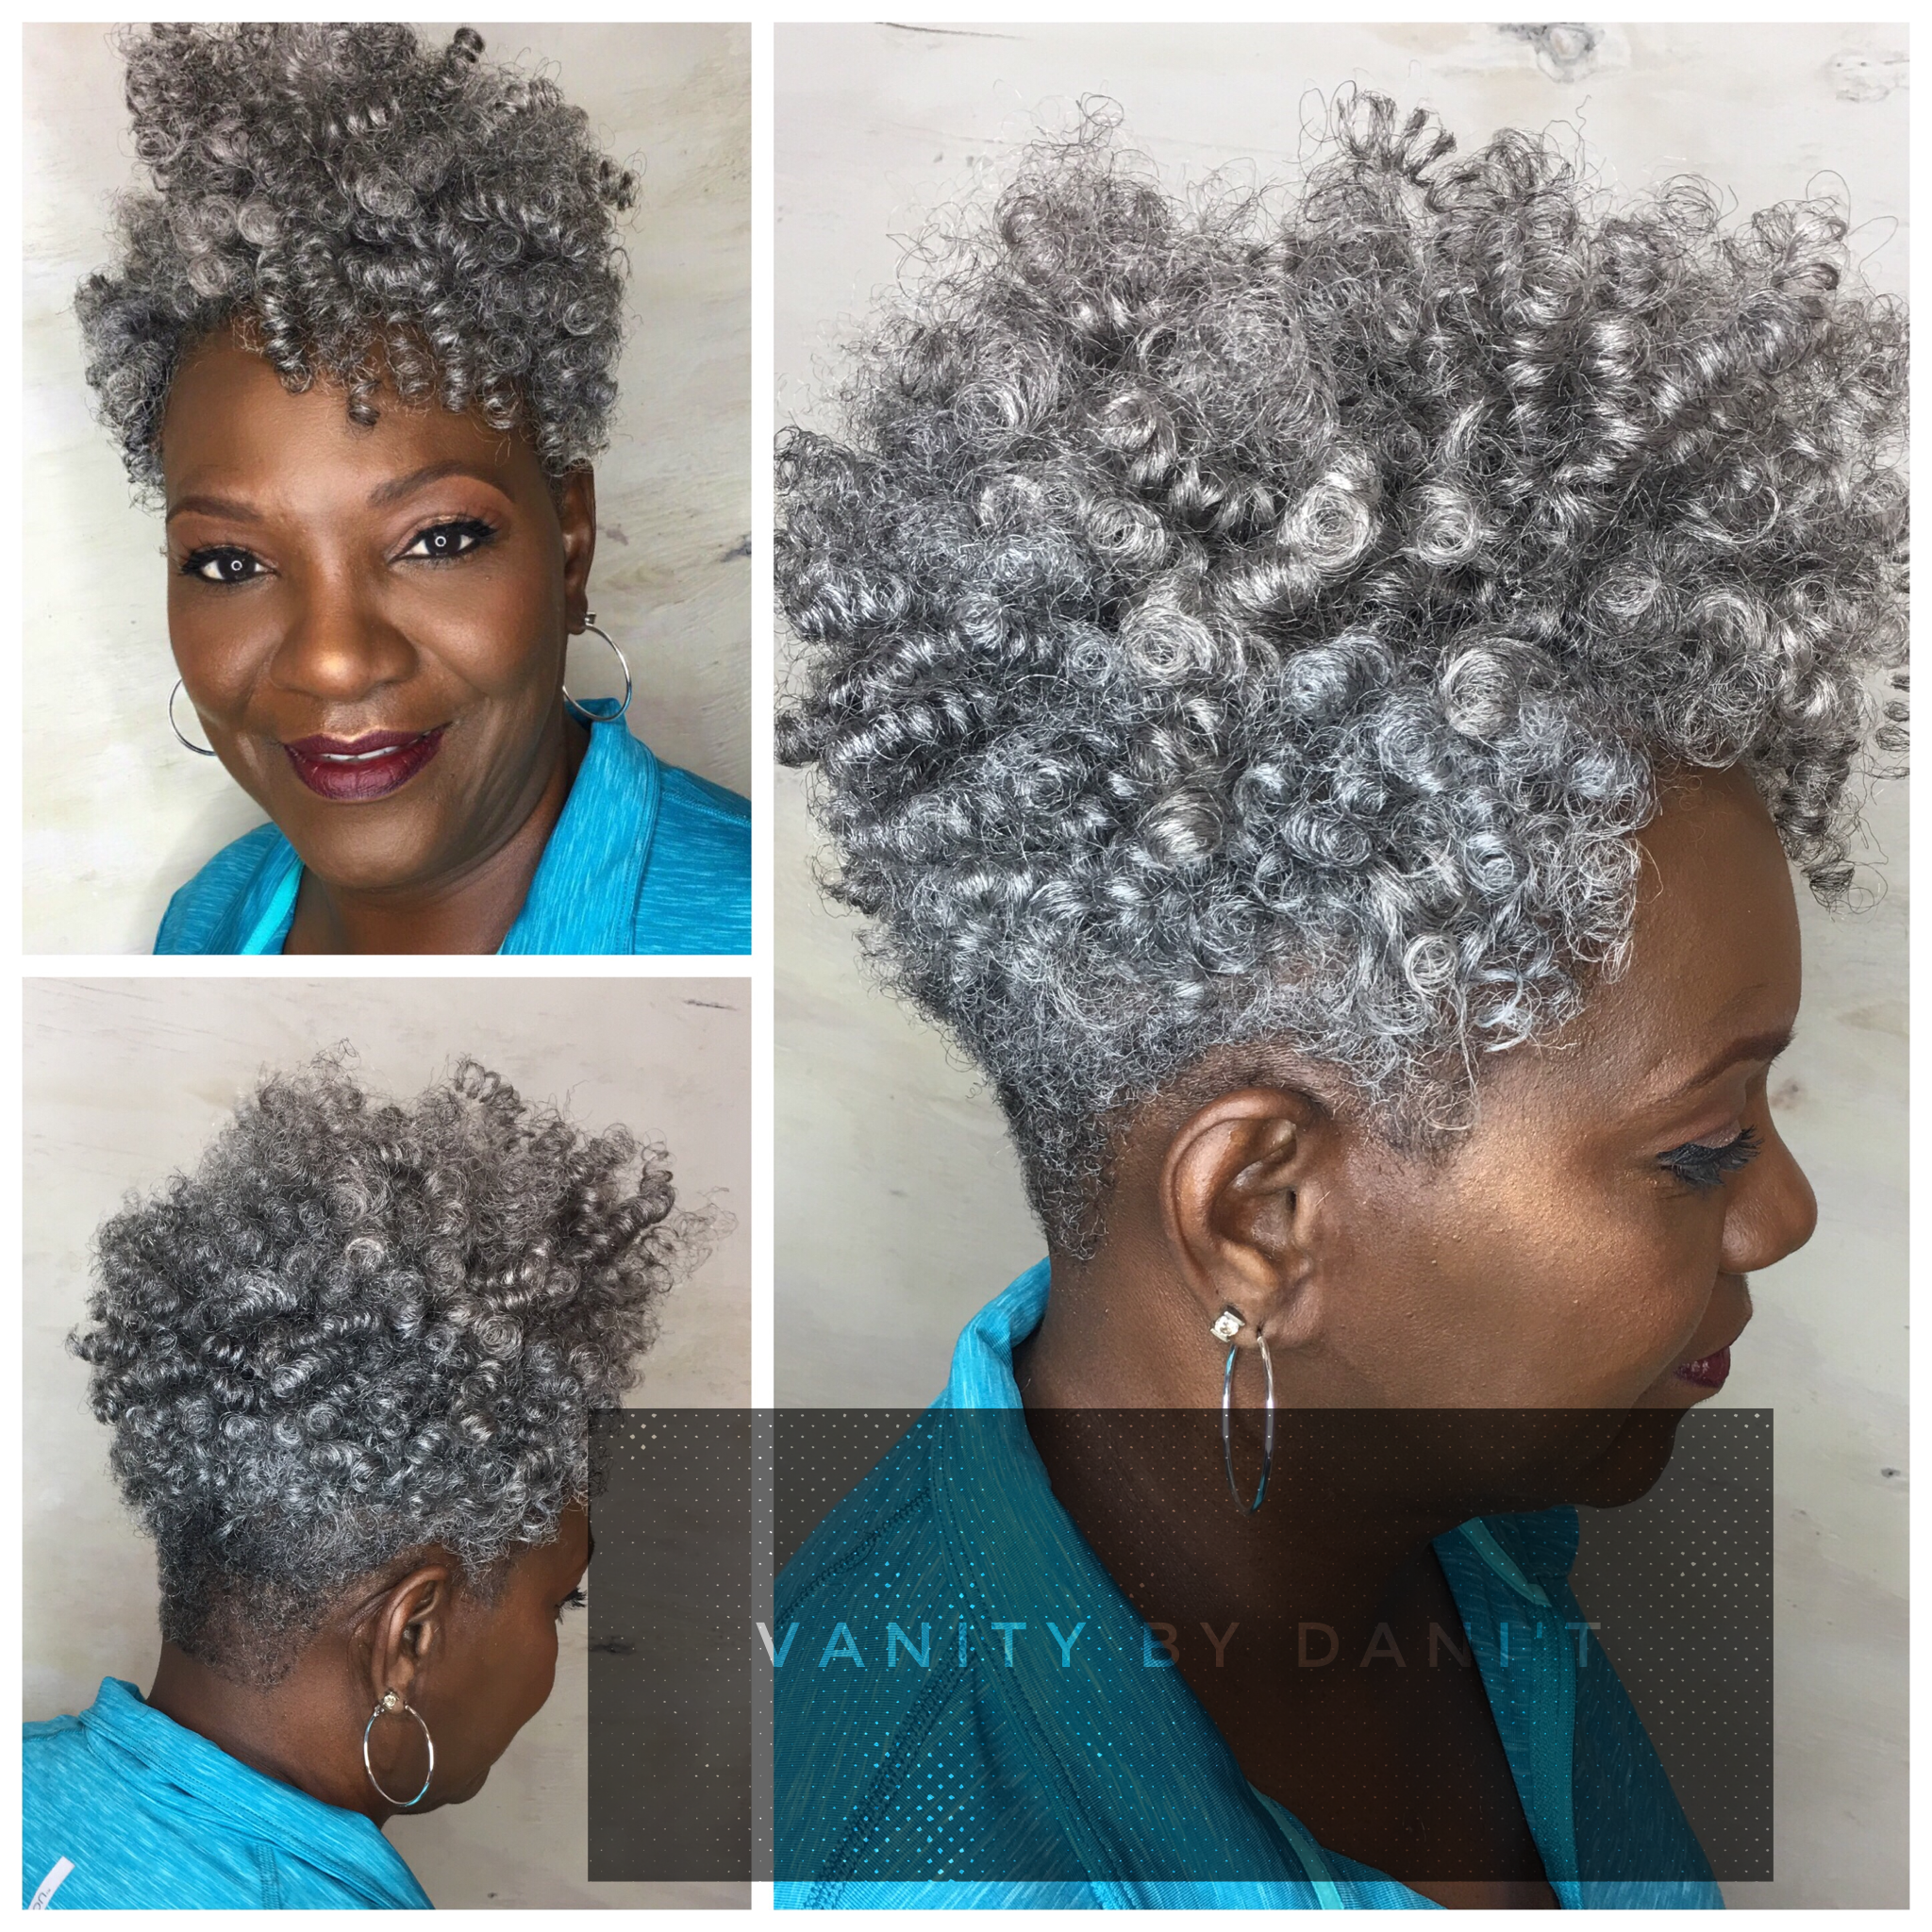 Vanity by DaniT has done it again This crochet tapered cut in